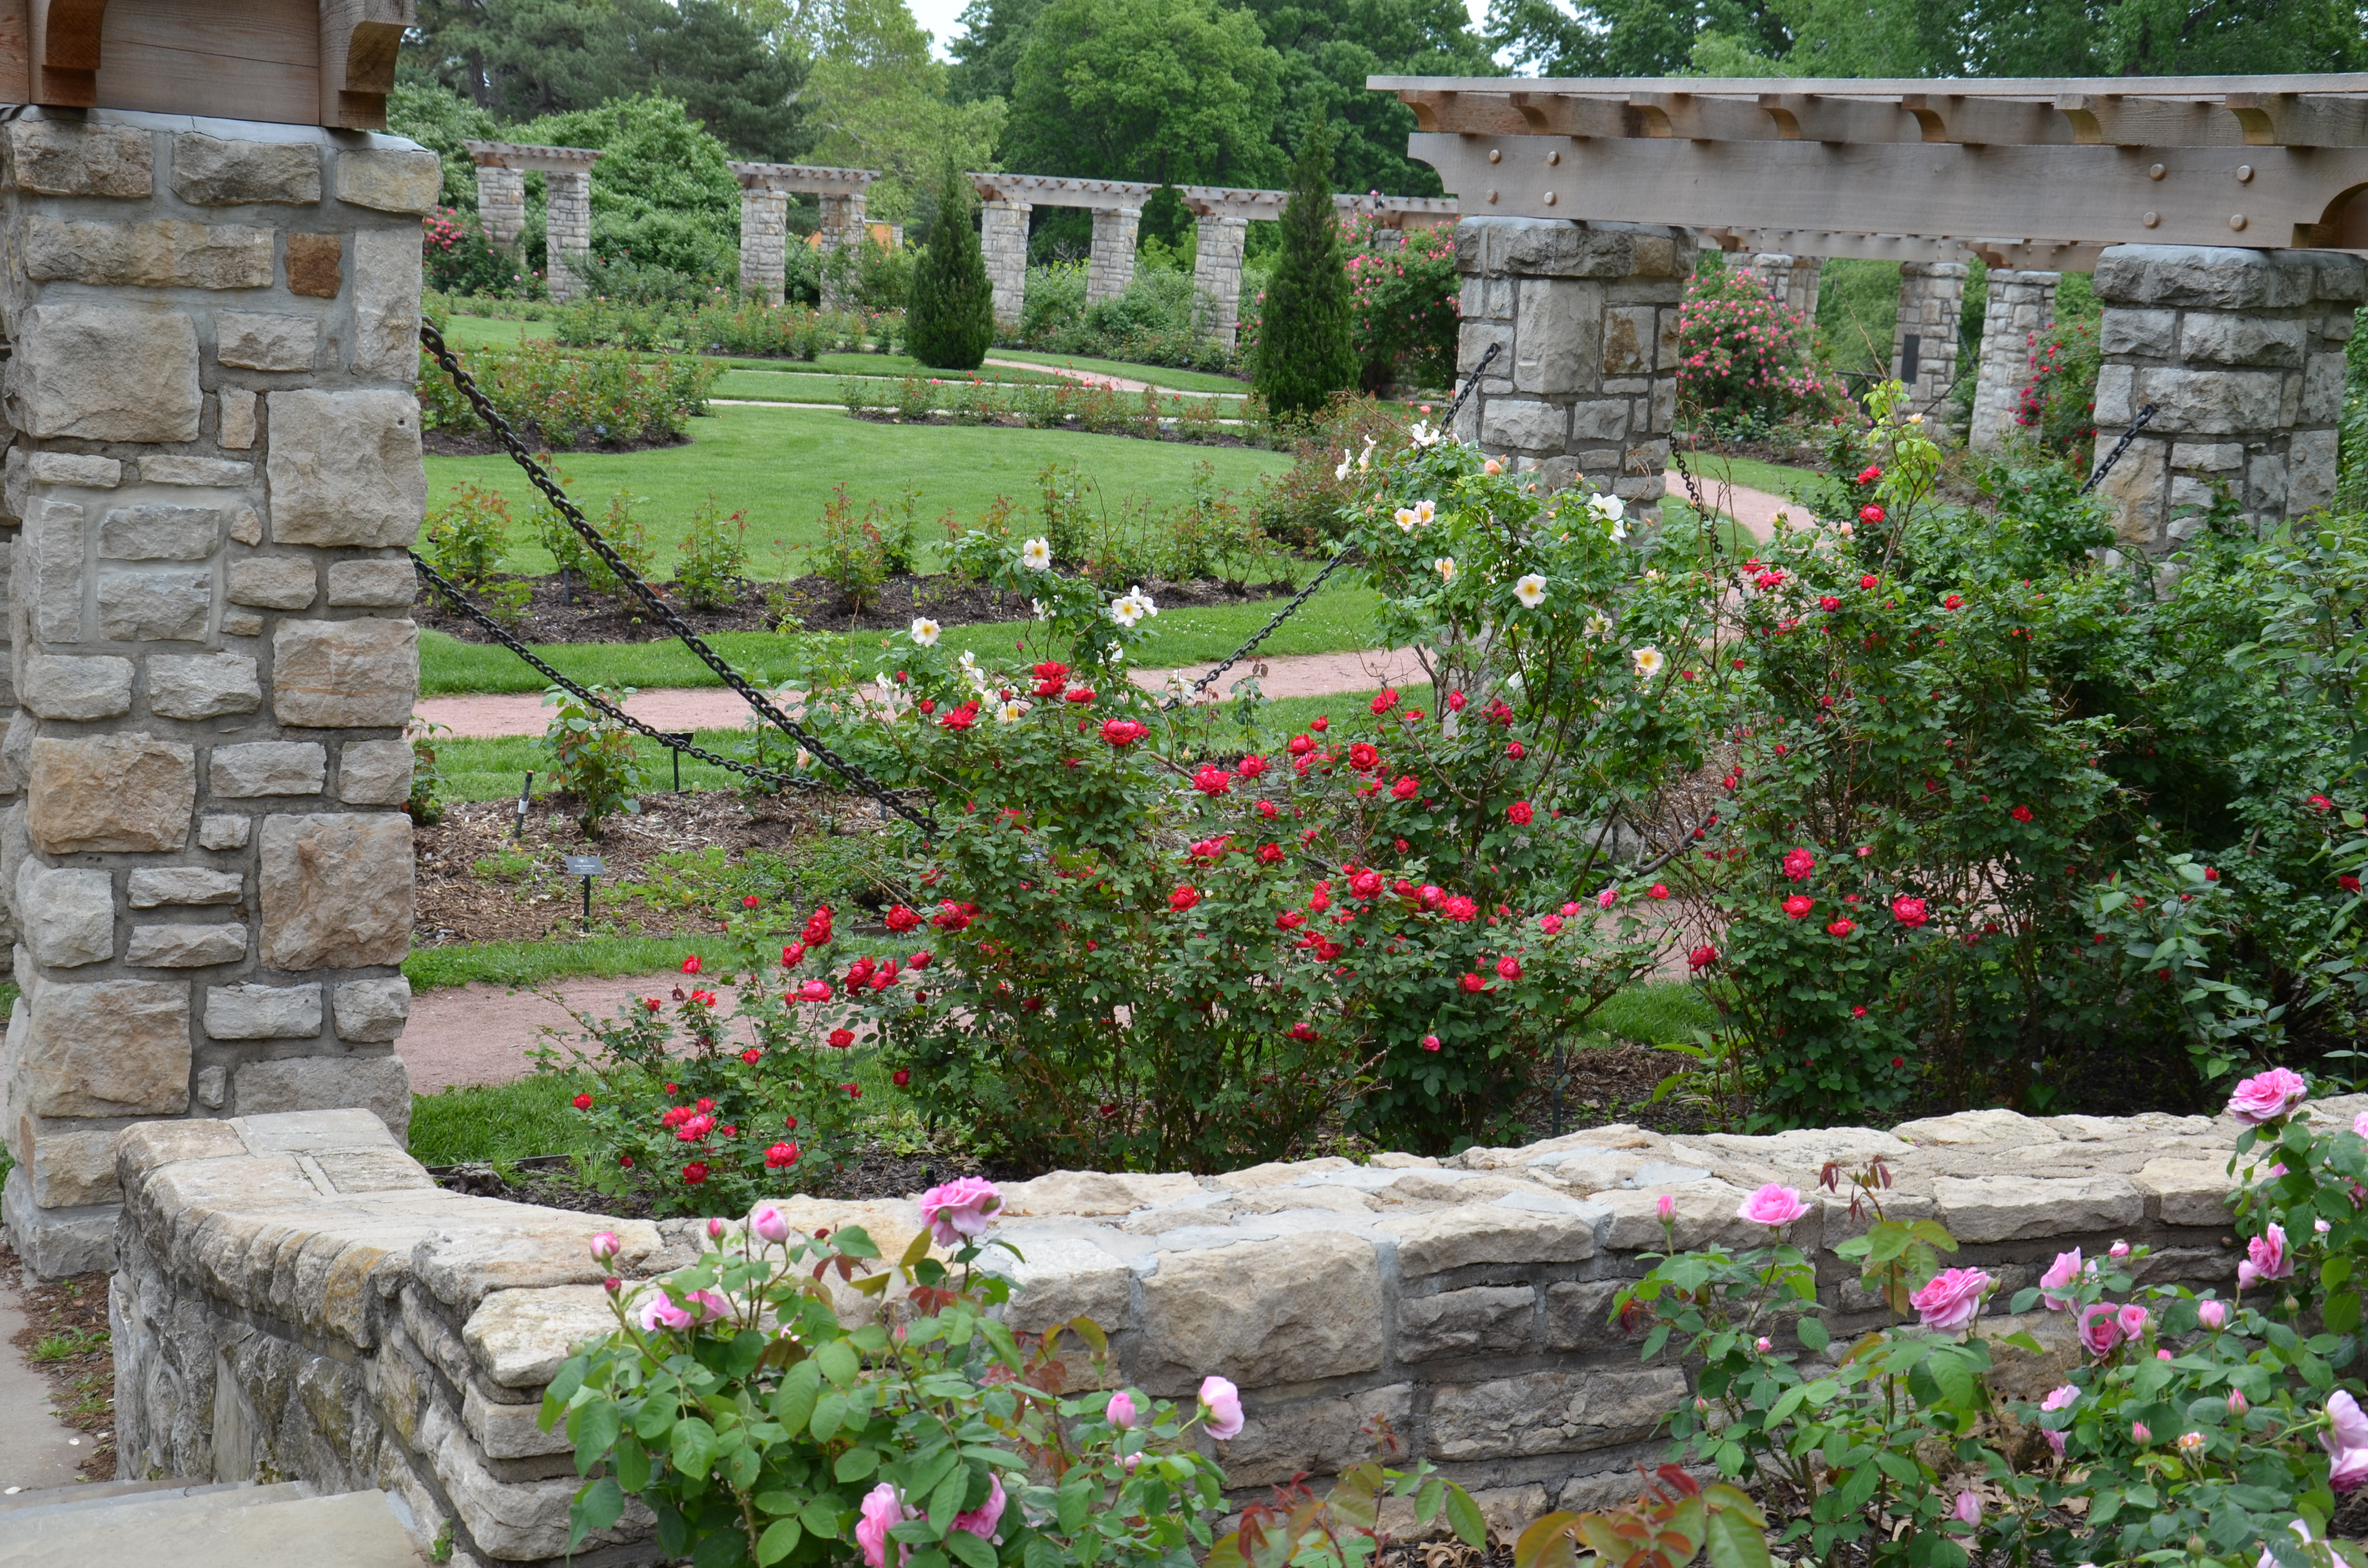 Roses In Garden: Laura Conyers Smith Municipal Rose Garden